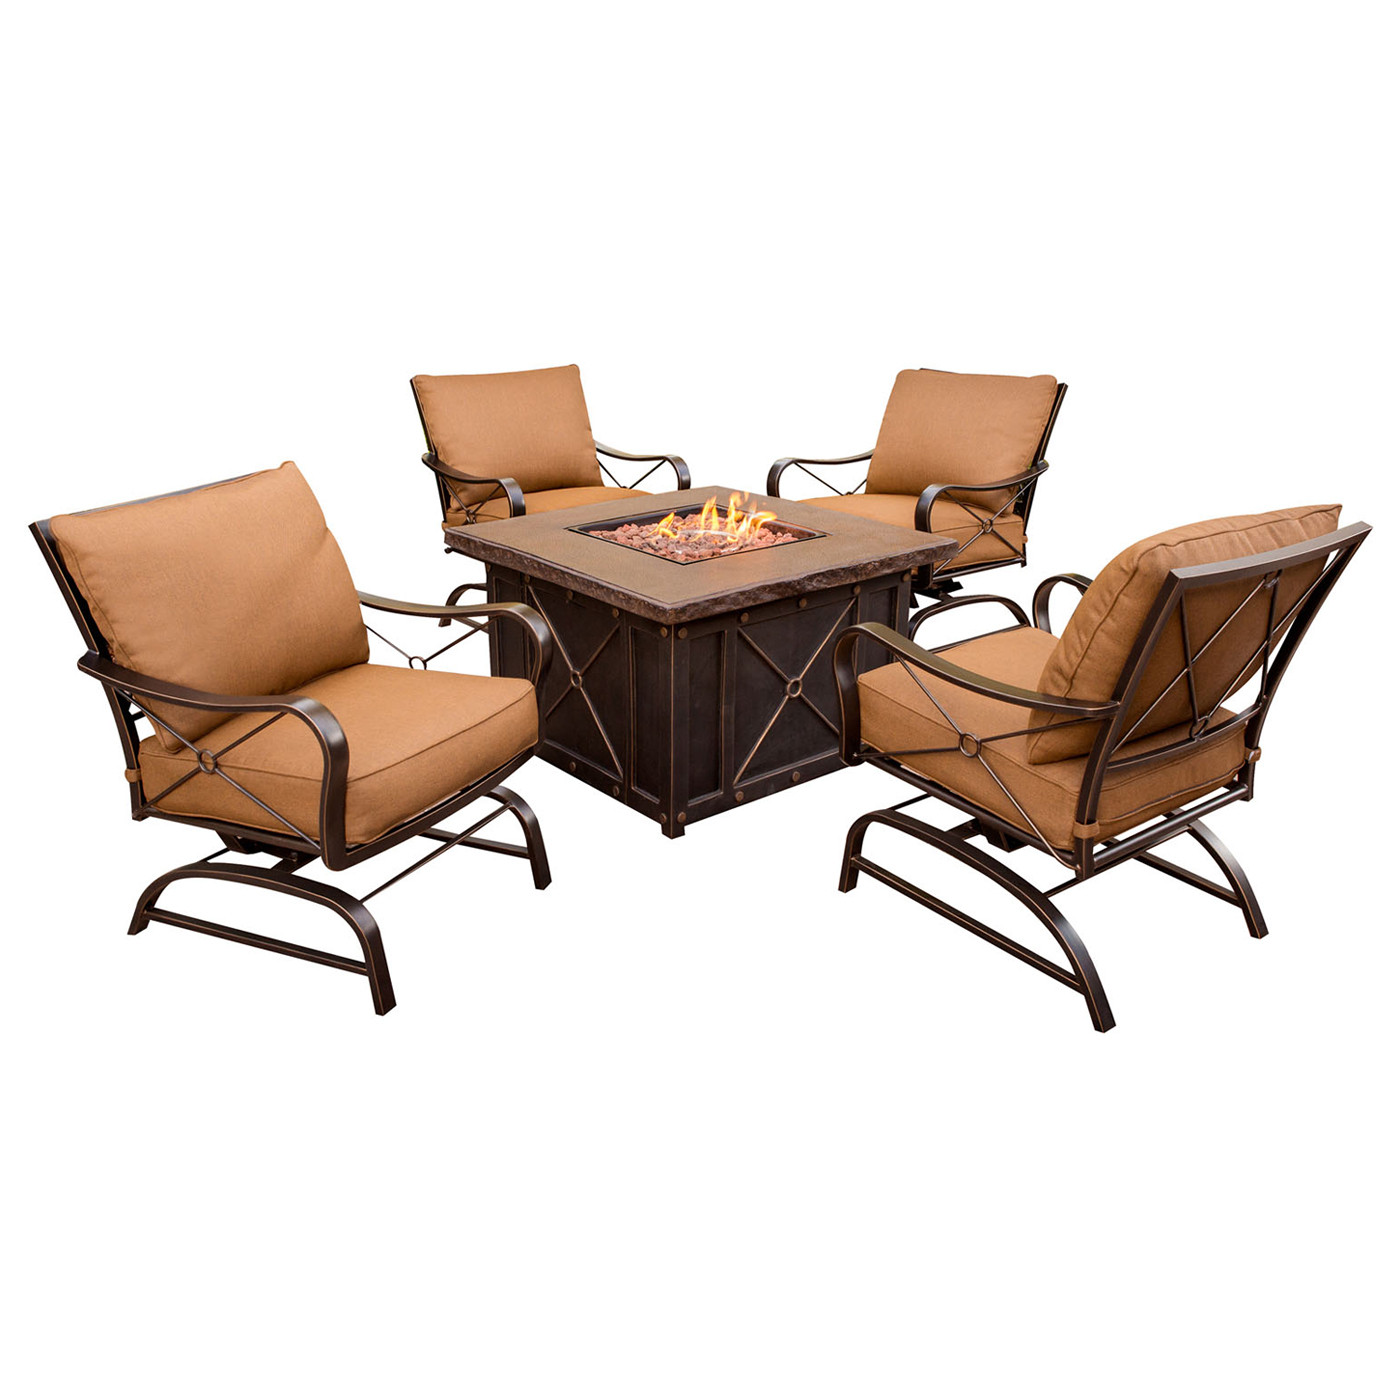 Best ideas about Hanover Outdoor Furniture . Save or Pin Hanover Outdoor Furniture SUMMRNGHT5PC Summer Night 5 Now.